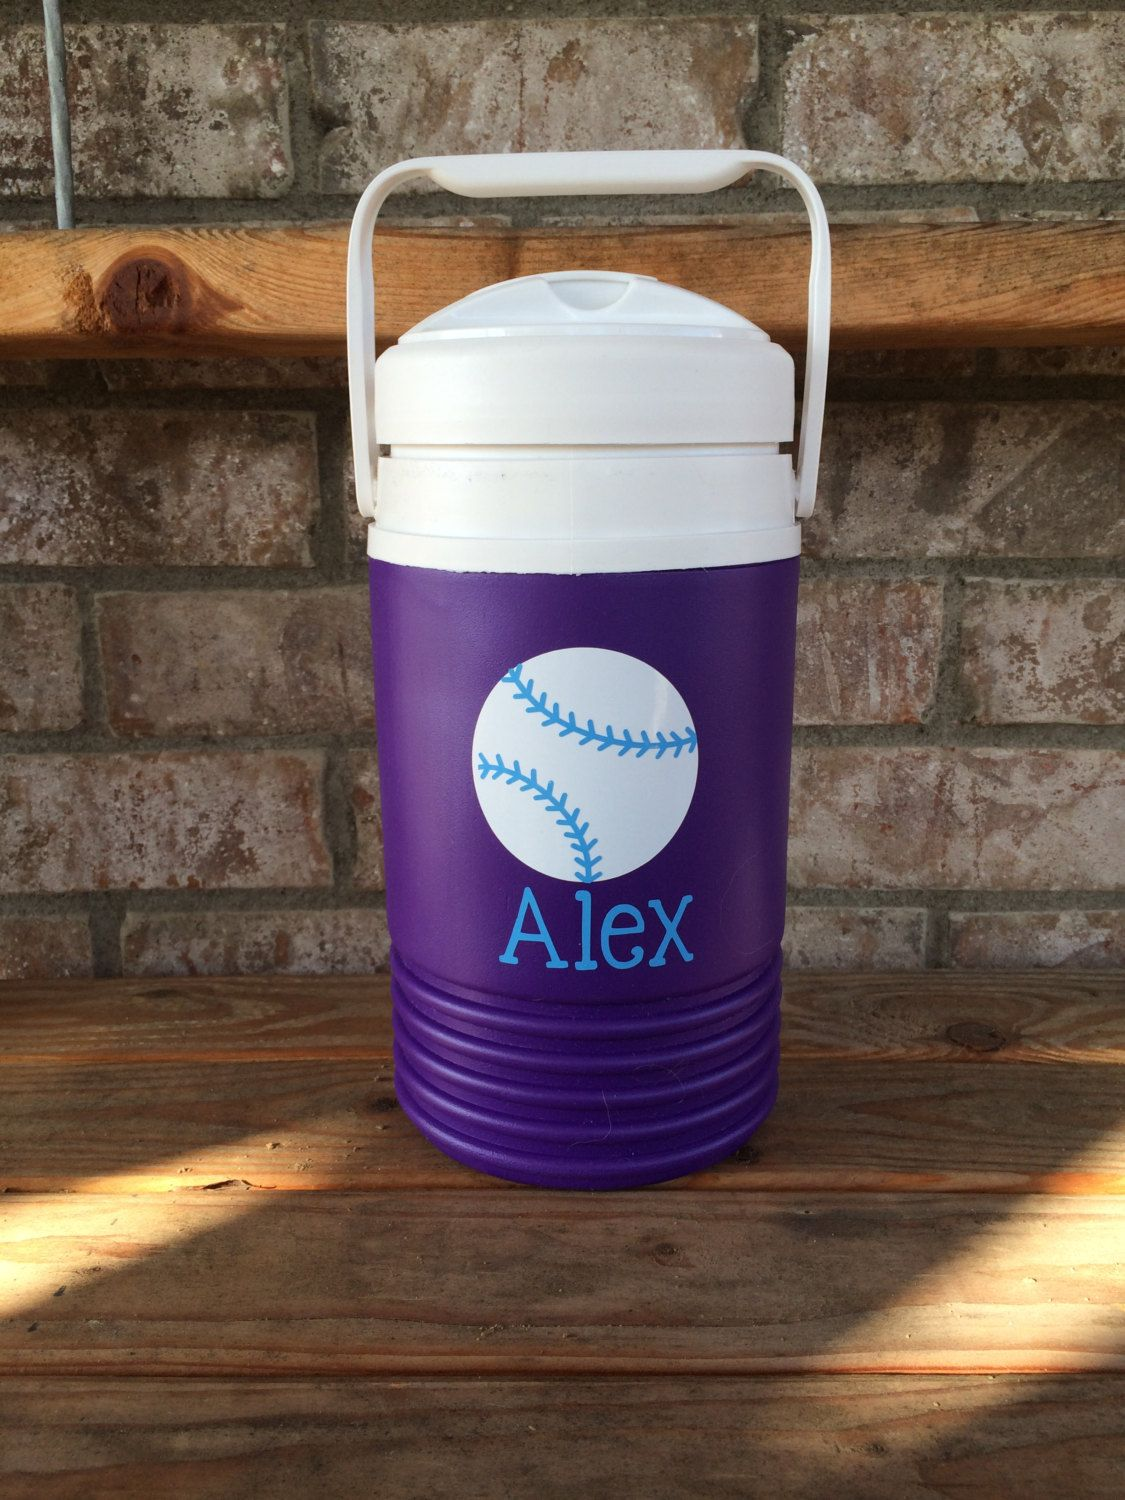 Personalized Half Gallon Water Cooler Monogrammed Water Jug Sports Water Cooler By Happytoz On Etsy Water Coolers Water Jug Cooler Monogram